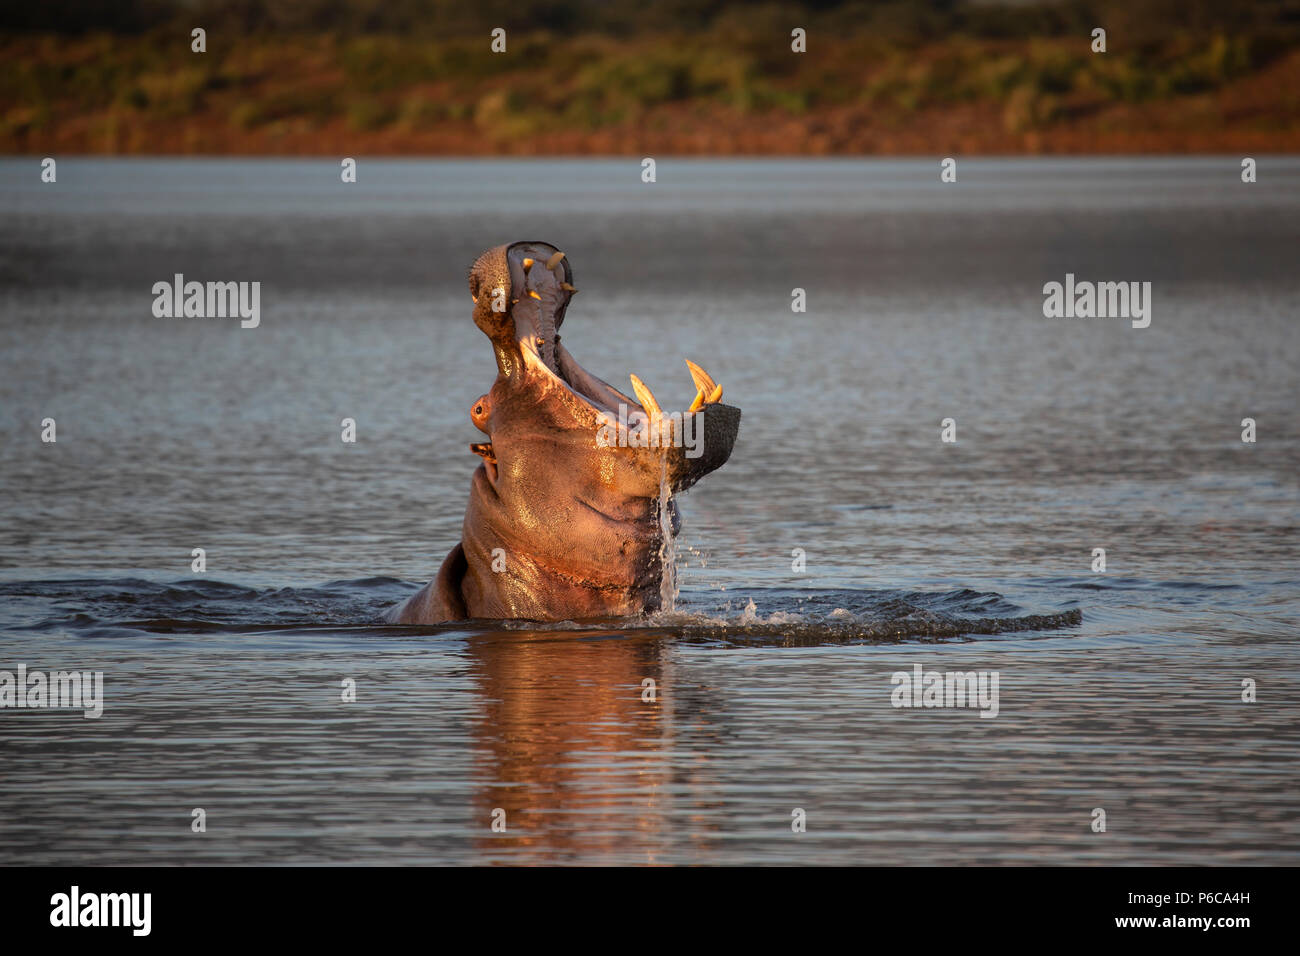 Hippopotamus - Hippopotamus amphibius with wide gaping yawn as its head emerges from a lake in South Africa - Stock Image